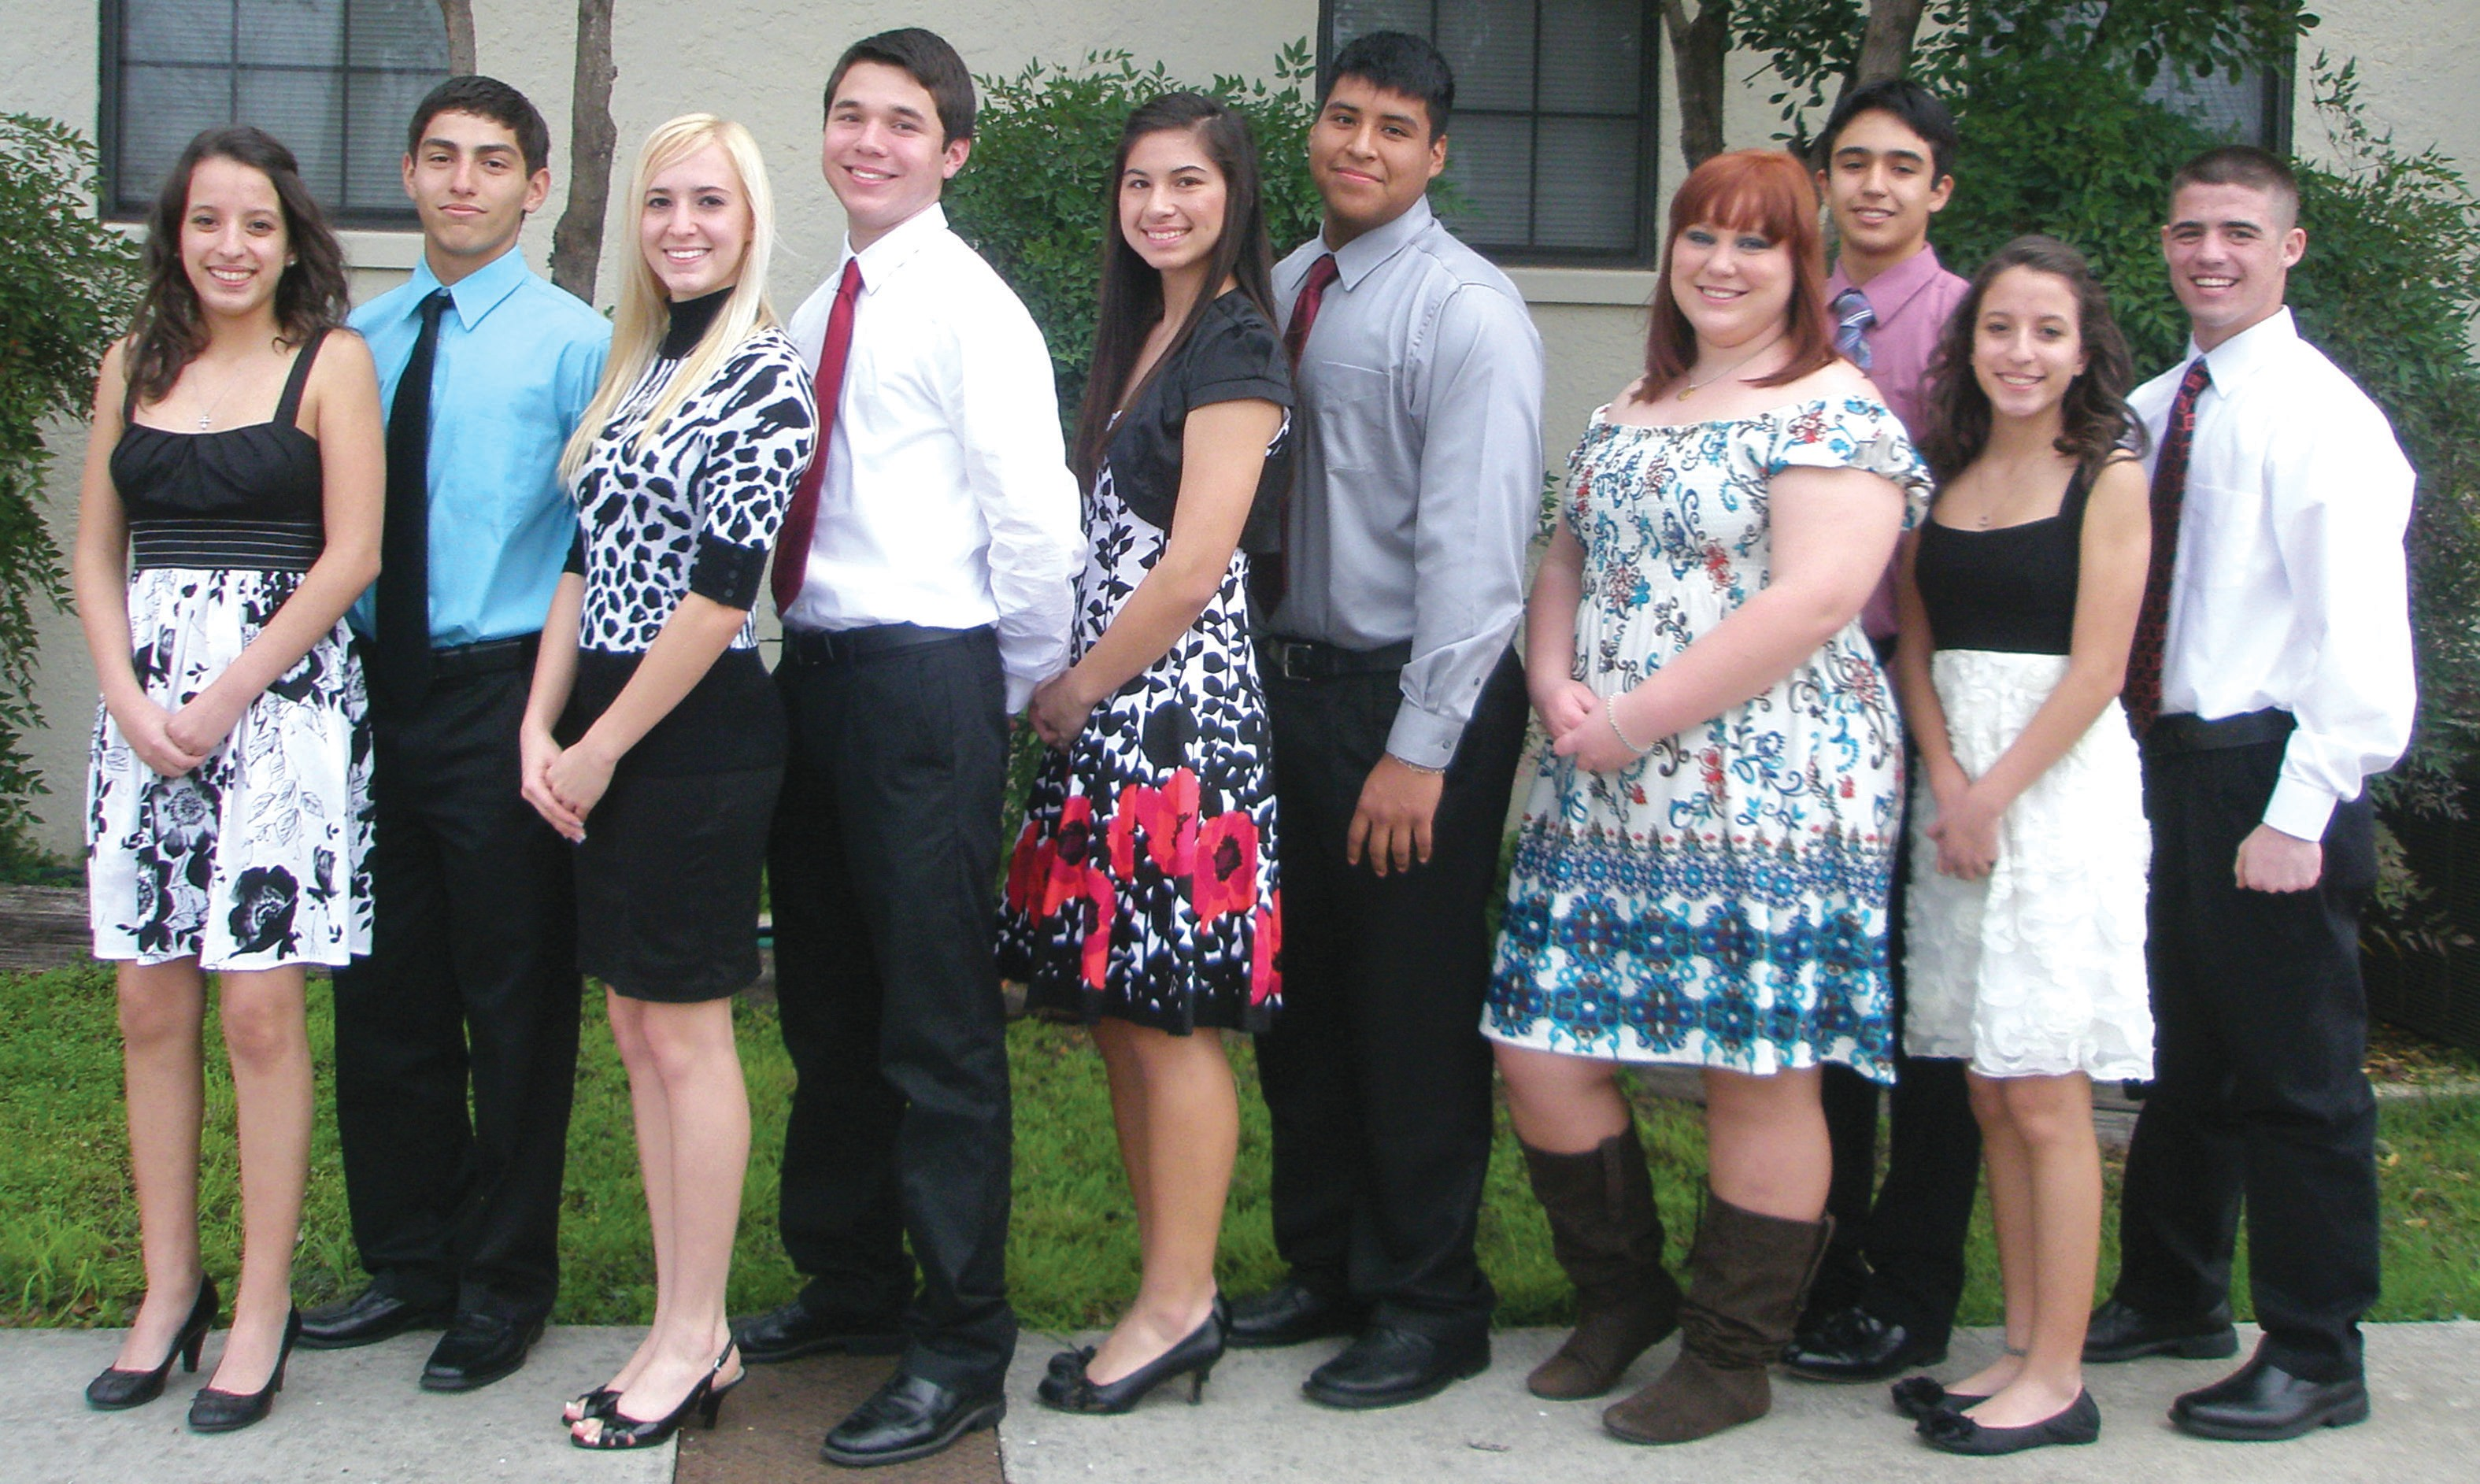 The annual Poteet Strawberry Festival tea was held on Feb. 4 at the Poteet Methodist Church. The court members (from left to right) are: Lindsay Ramon, Ronald Sanchez, Savanah Holloway, Cameron Uribe, Lauren Zavala, Adrian Contreras, Samantha Mikolajczyk, Alejandro Garcia, Leslee Ramon and Brandon Lopez.